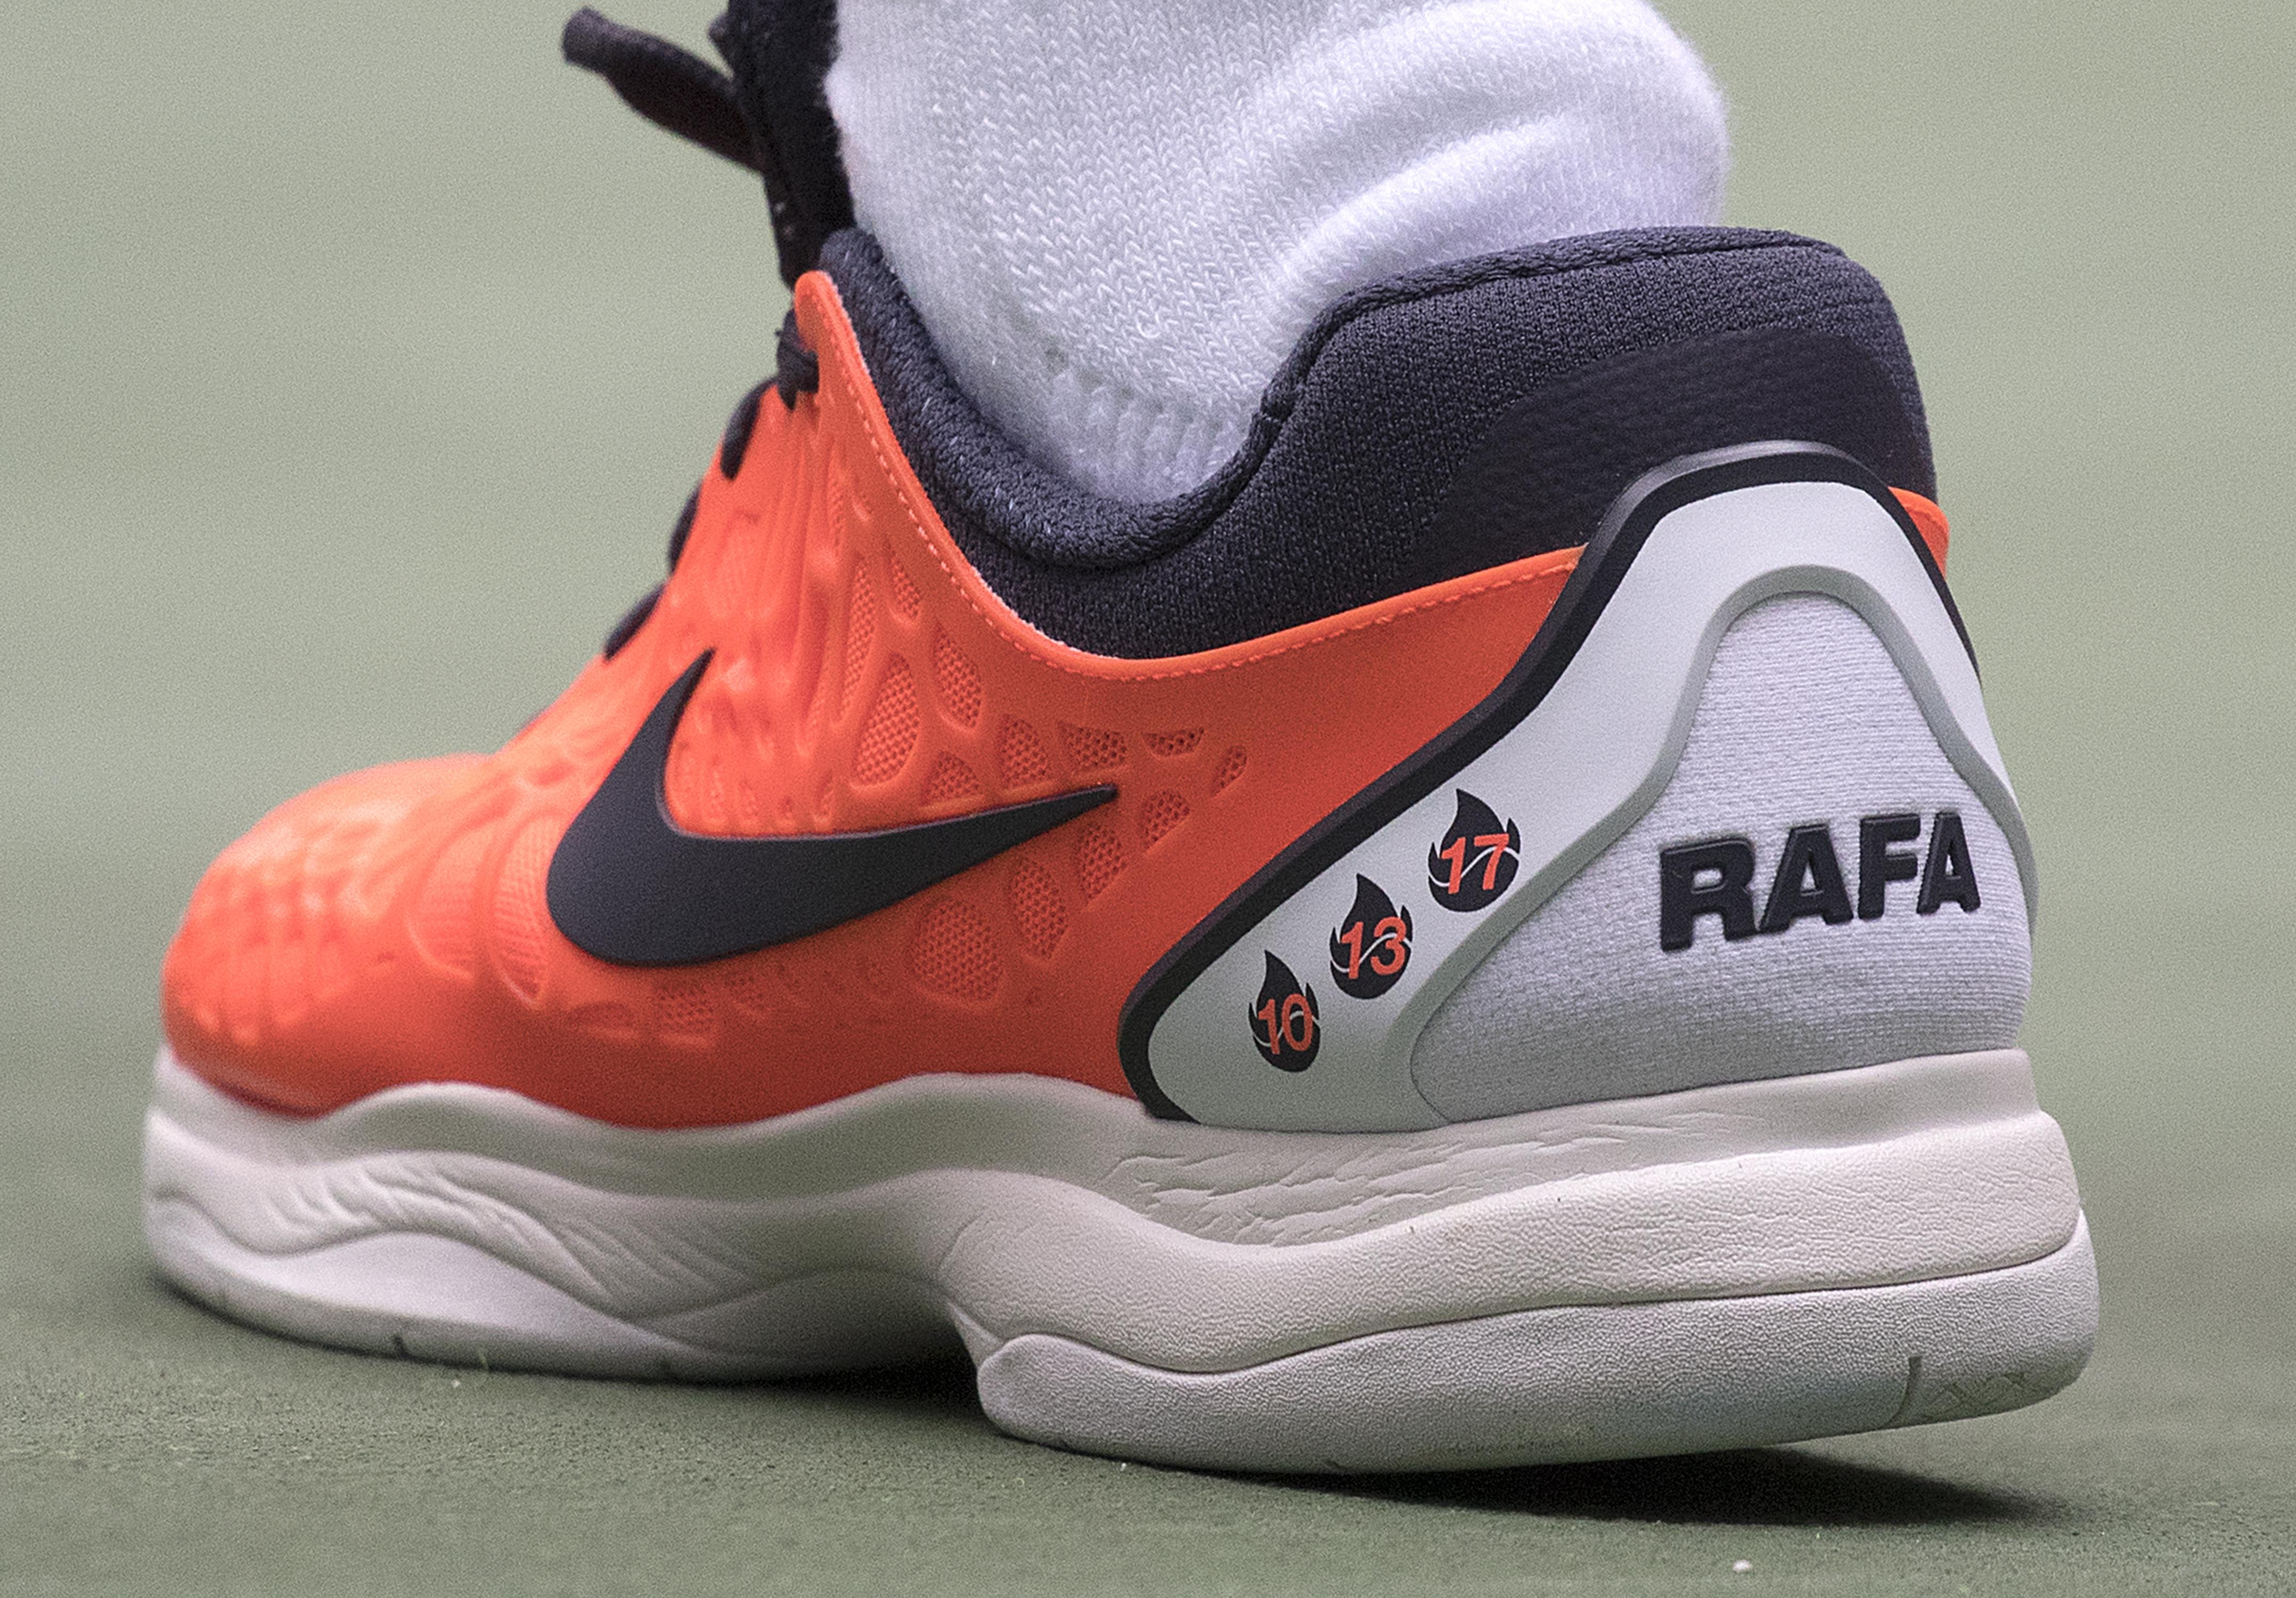 Rafa will be desperate to add another US Open title to his trainers for next year's tournament